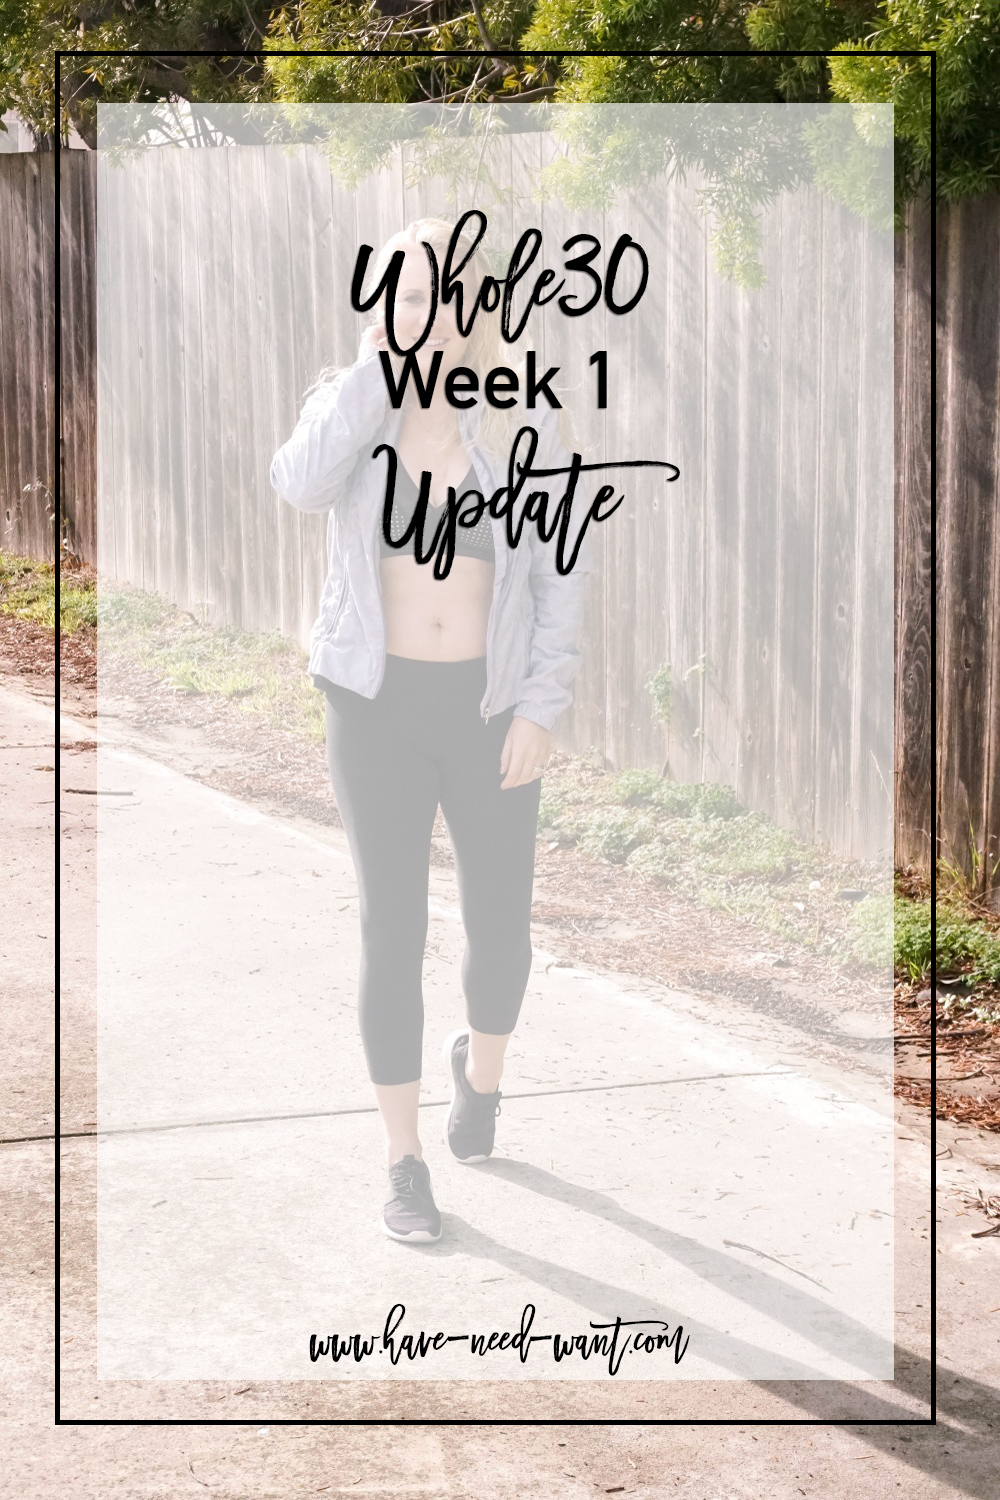 Sharing my Whole30 week one progress on Have Need Want. Click on the photo to read the post! #Whole30 #Whole30January #HealthyLifestyle #HealthyEating #CleanEating